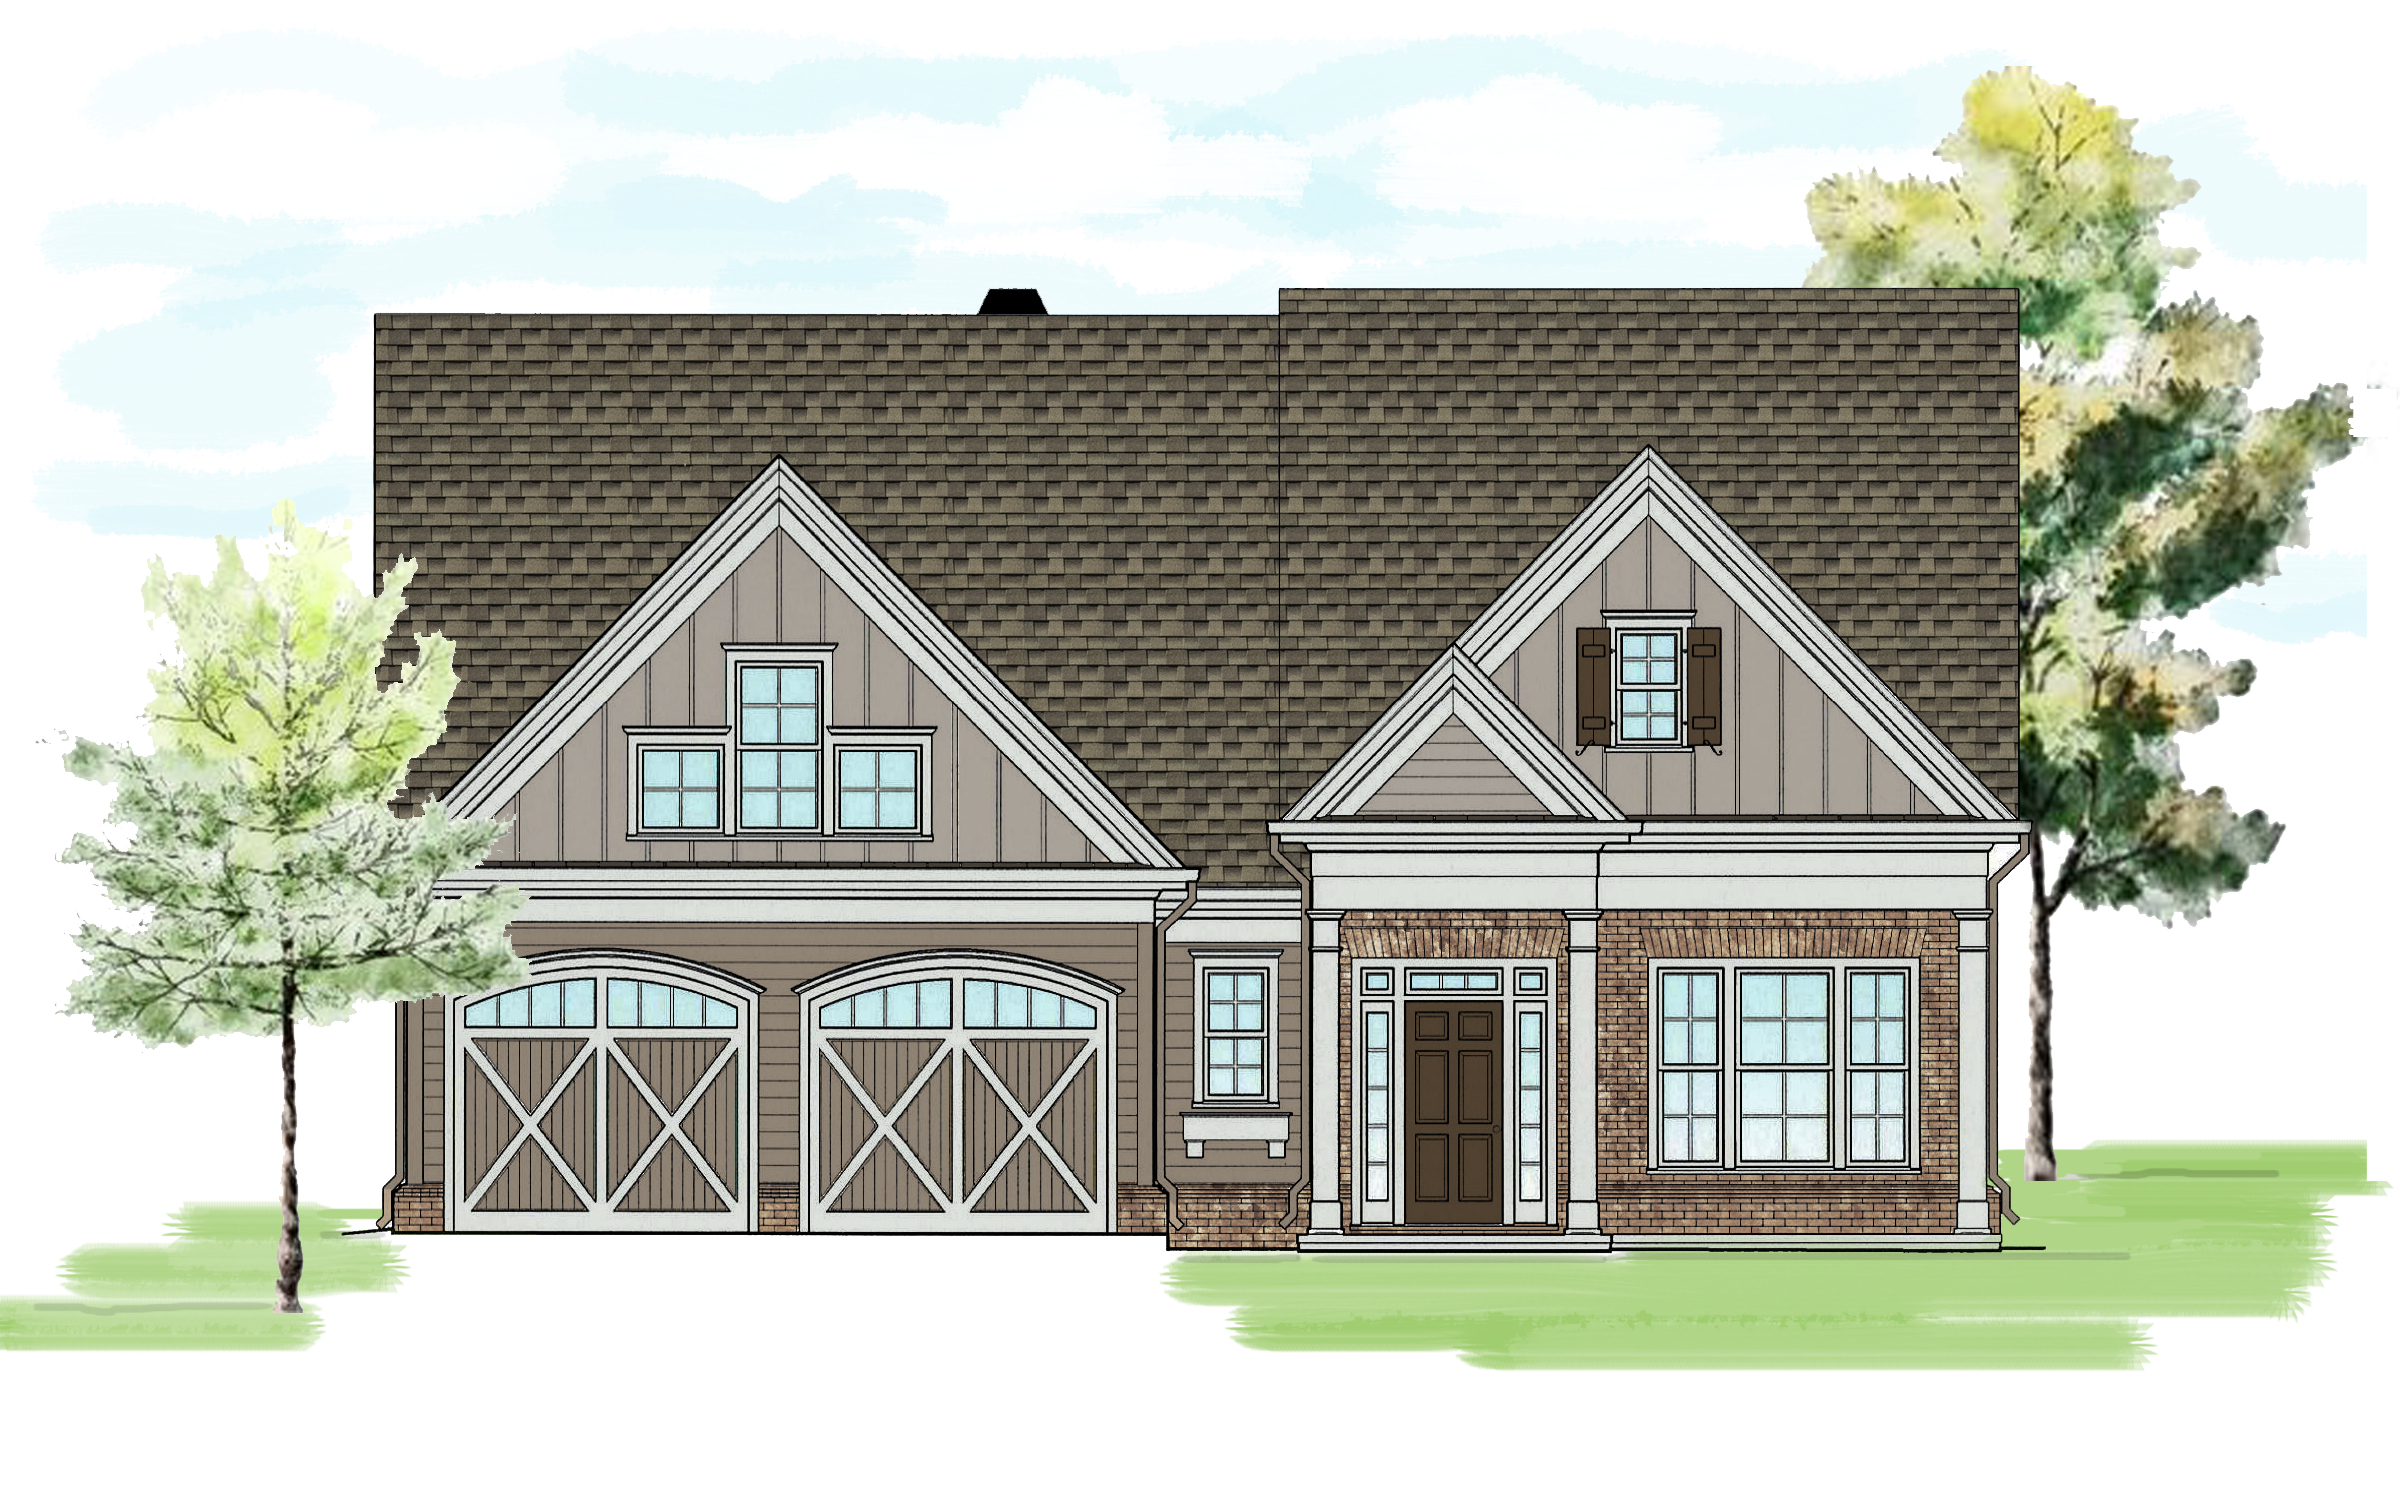 New Collins Front elv w Drawn trees Taupe.jpg